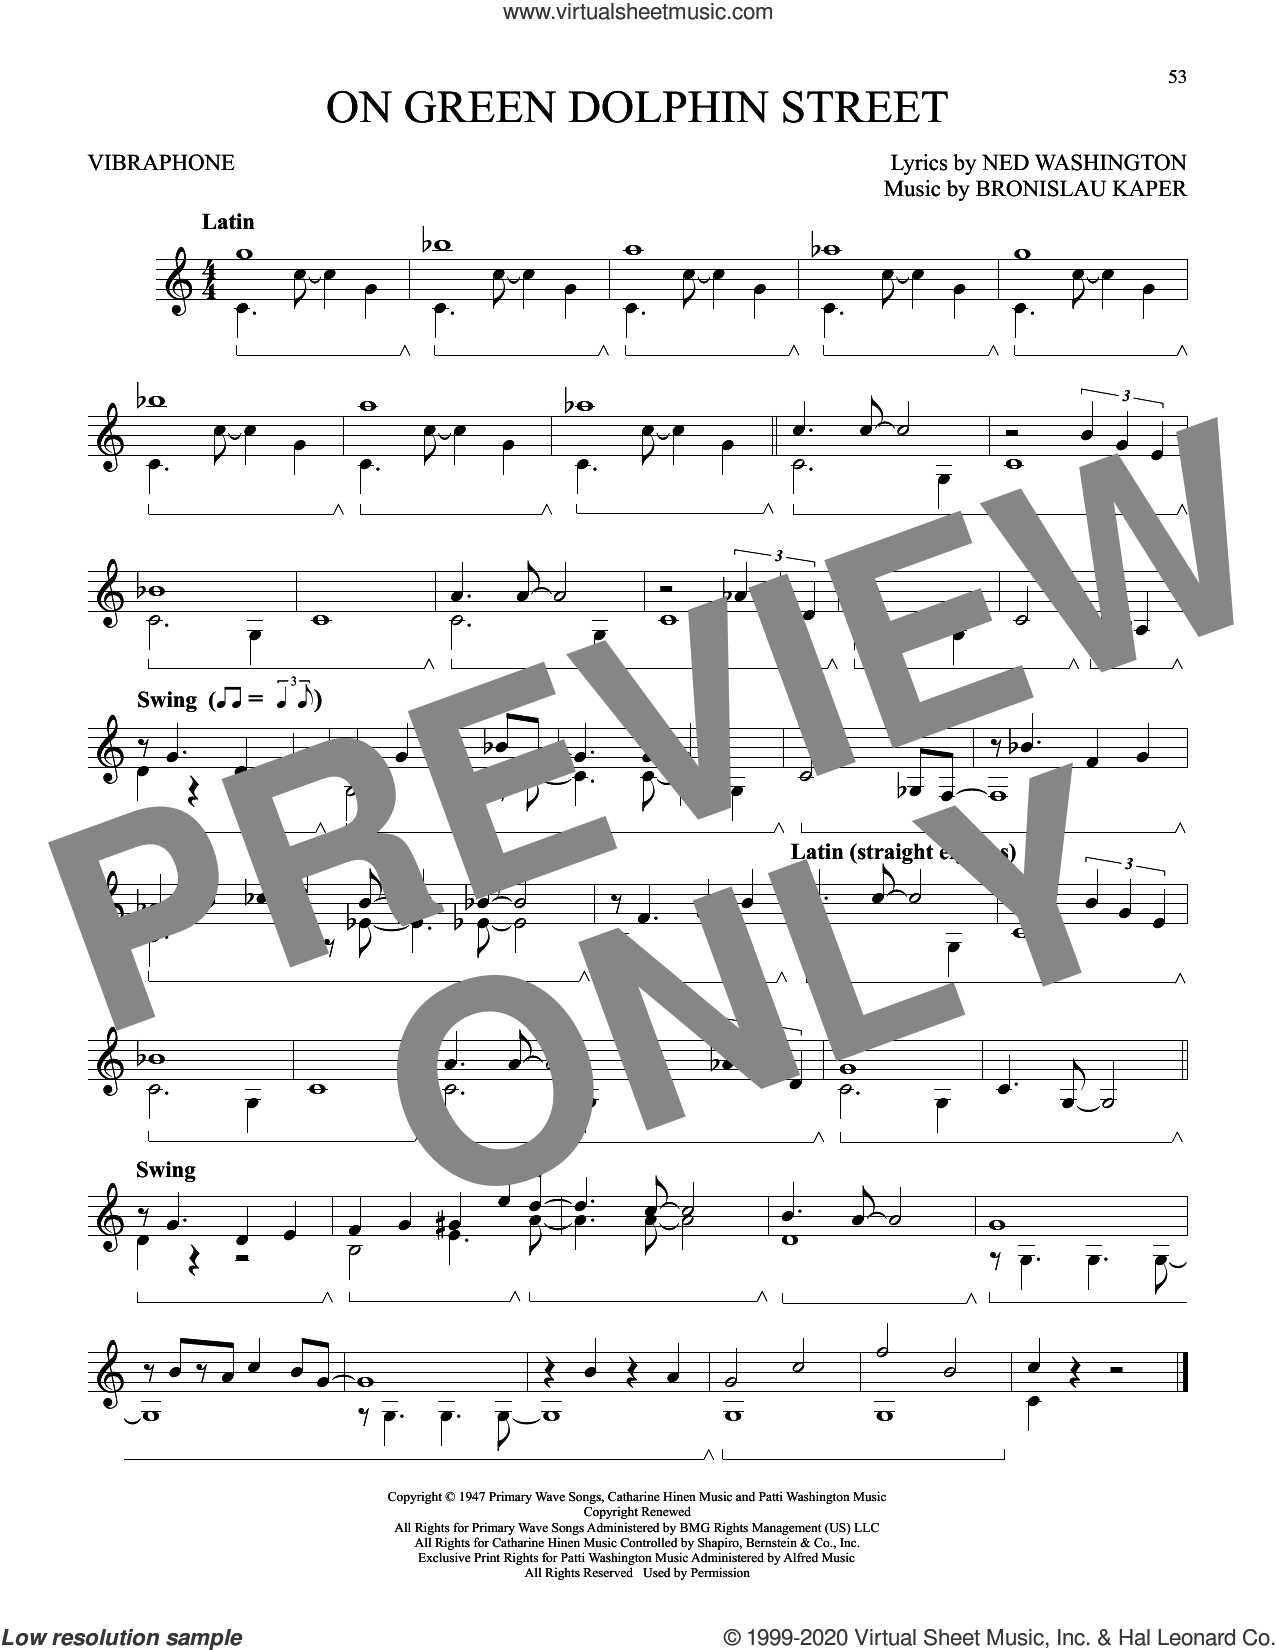 On Green Dolphin Street sheet music for Vibraphone Solo by Ned Washington and Bronislau Kaper, intermediate skill level